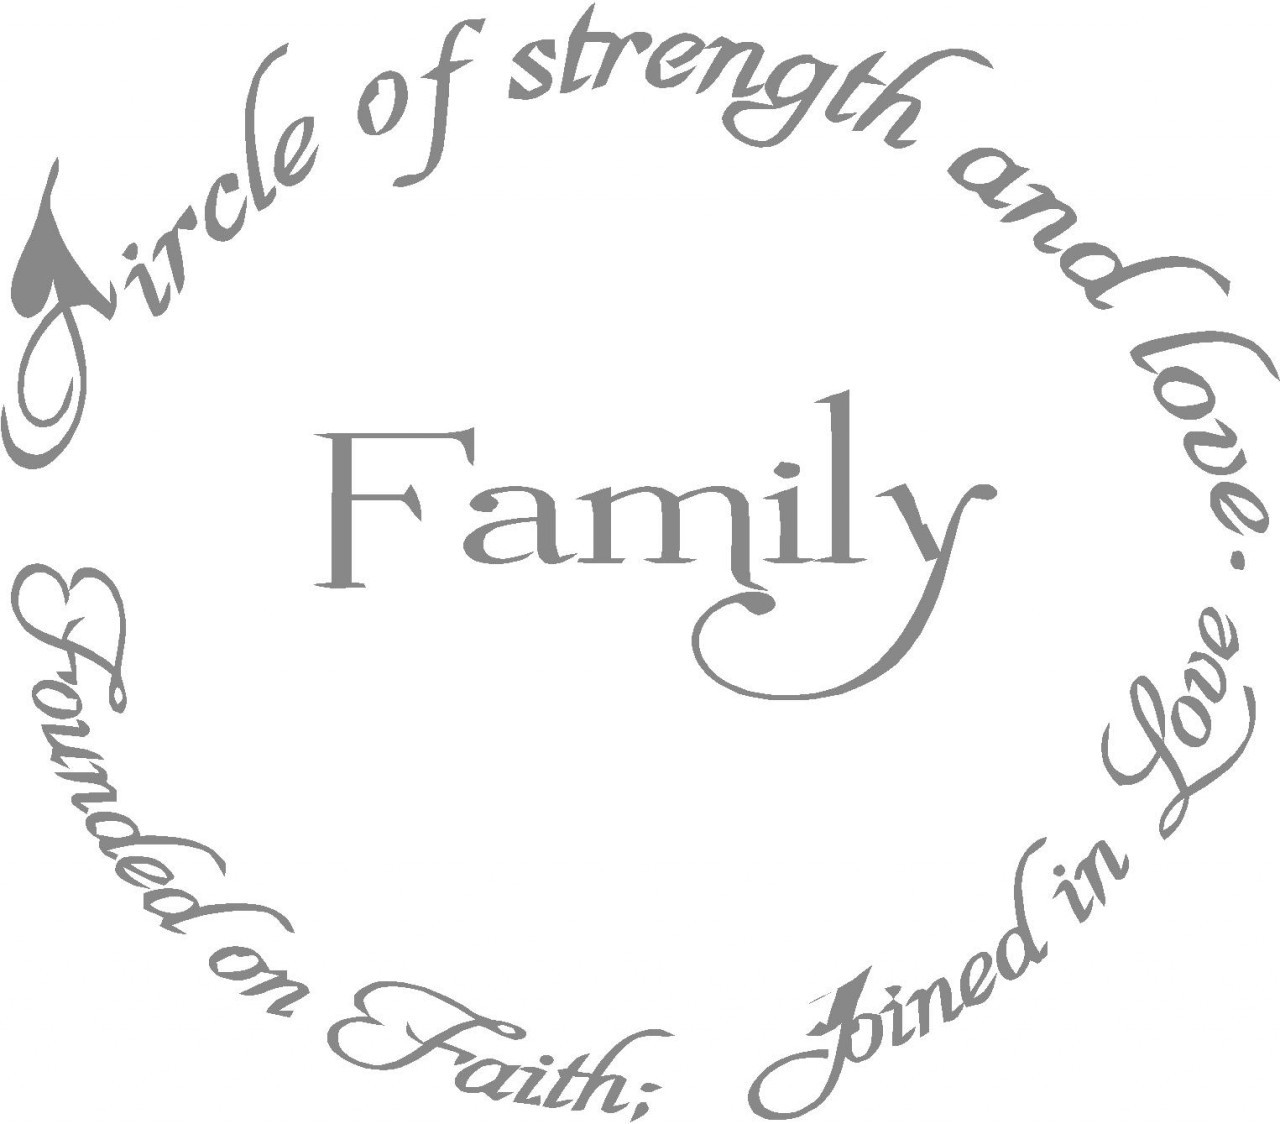 pics photos love quotes inspirational bible family